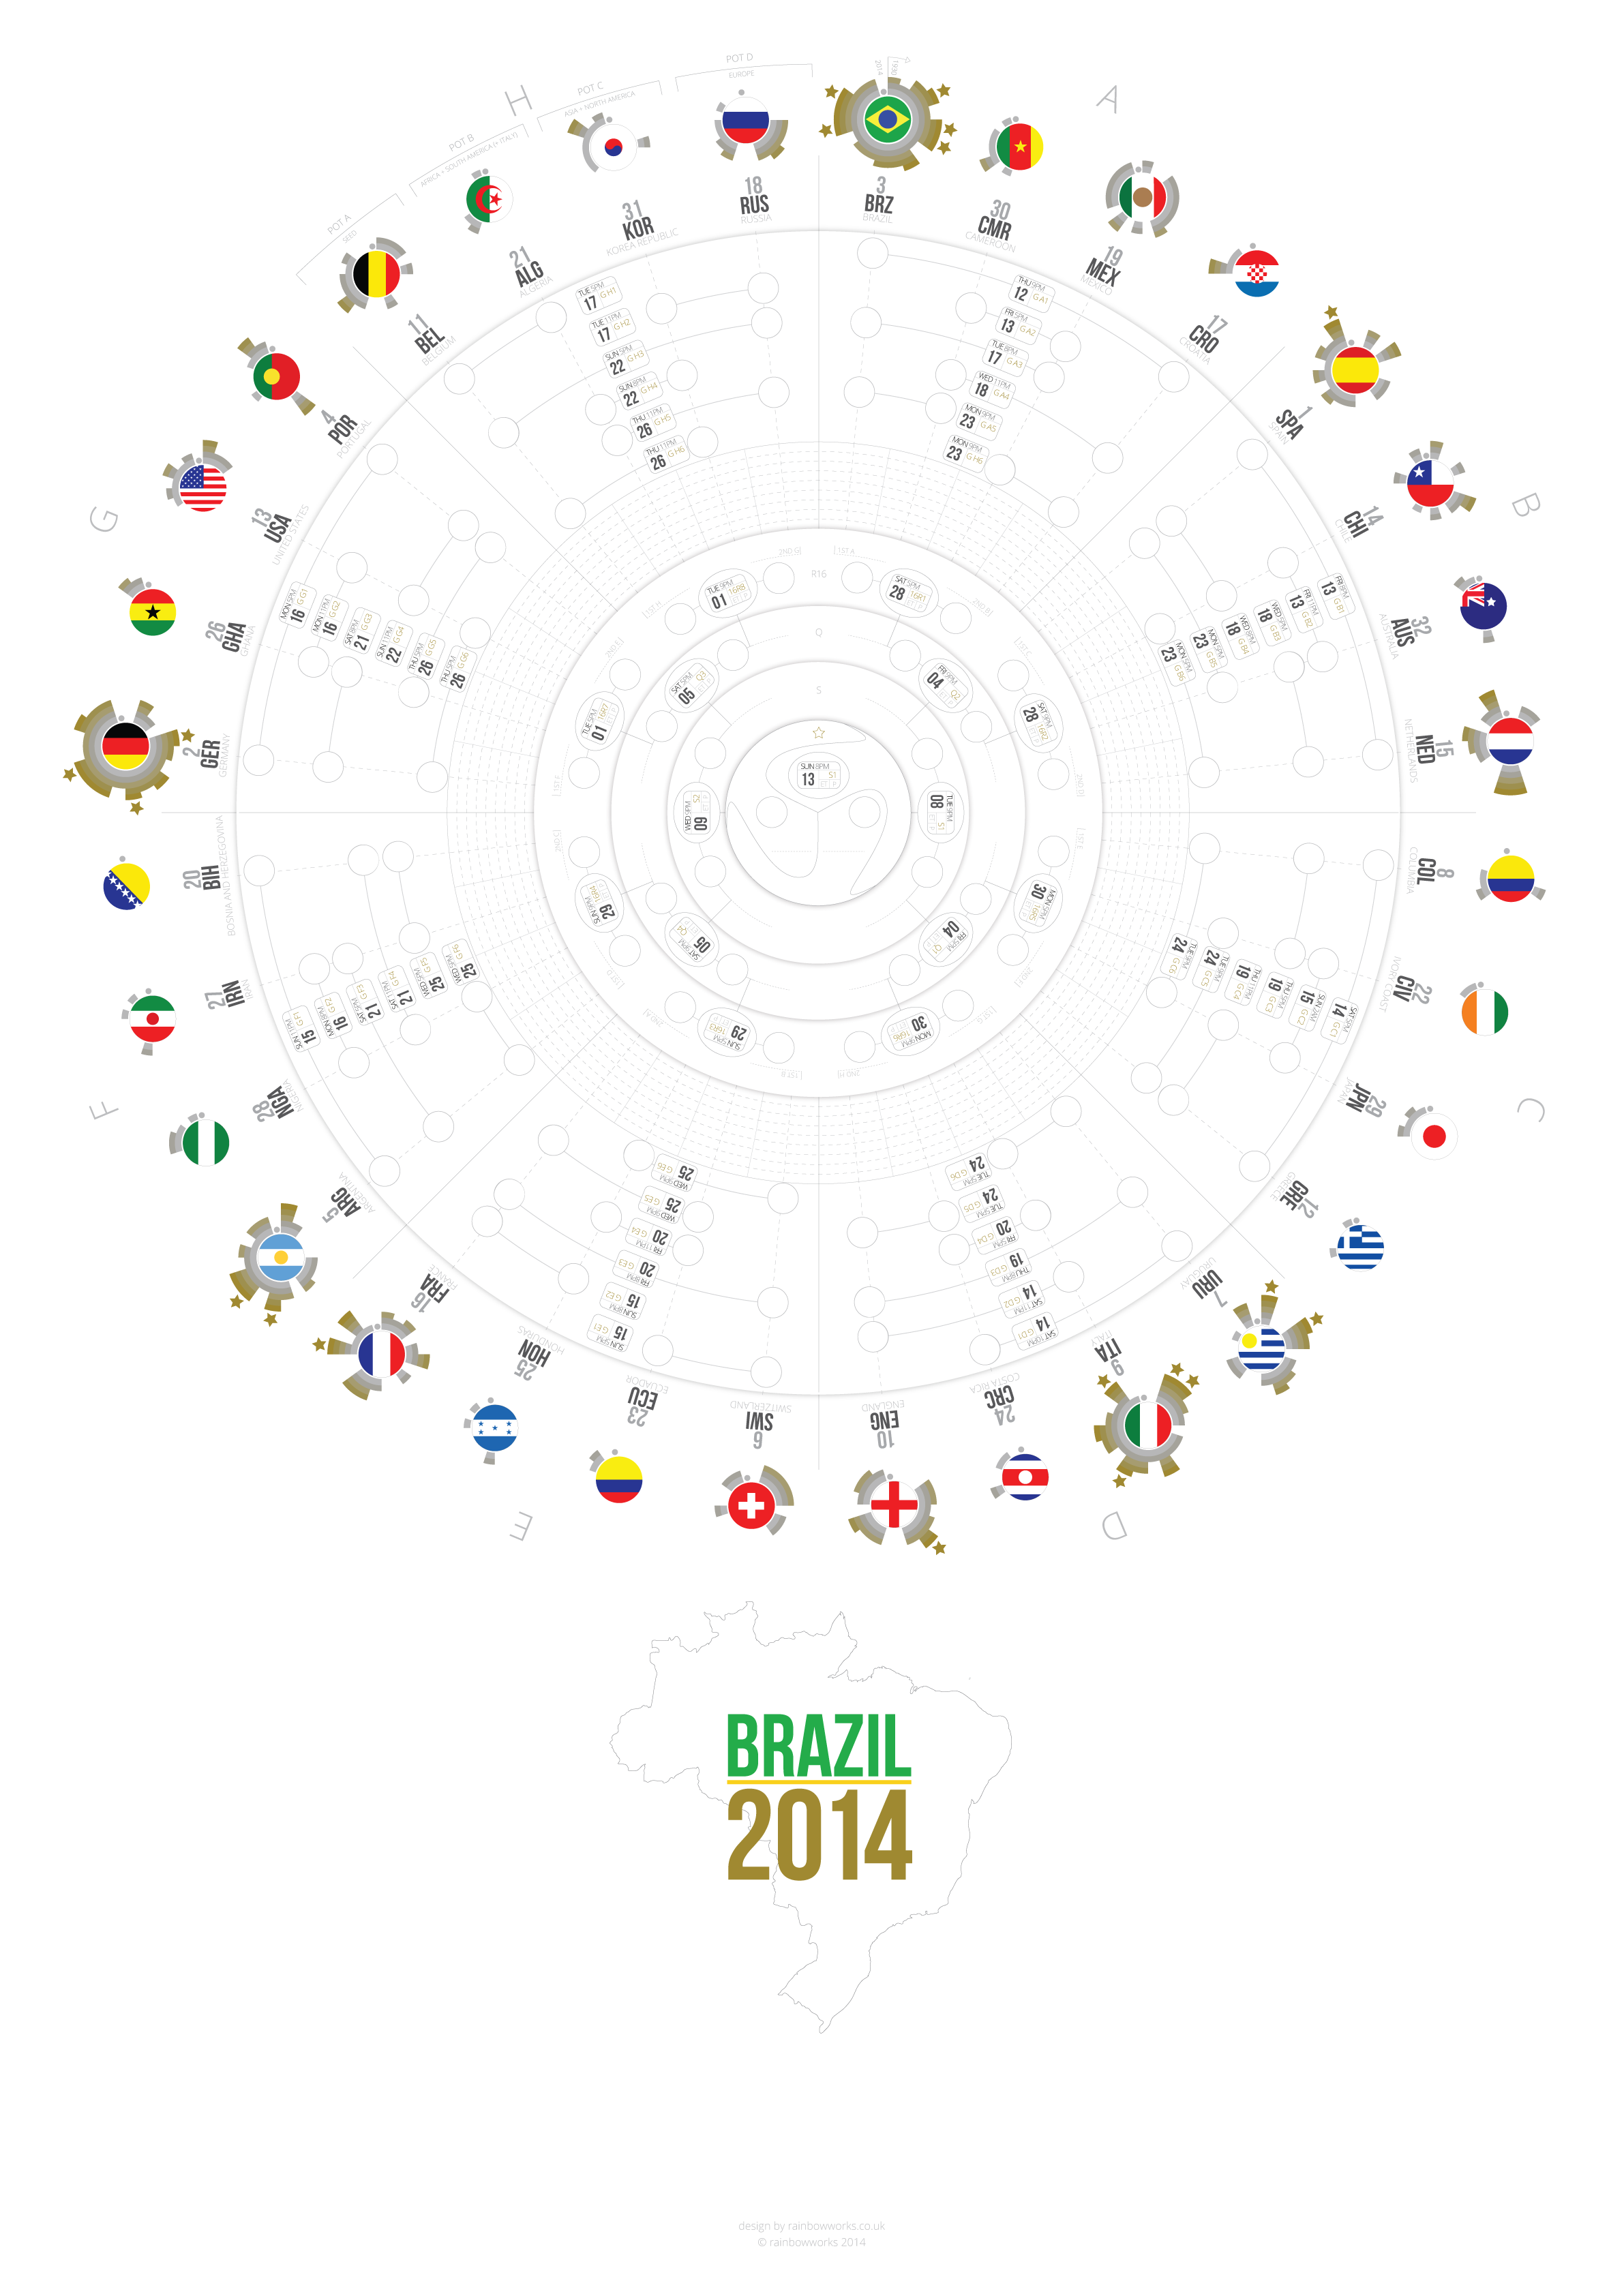 A wall chart for the 2014 FIFA World Cup Championship in Brazil, with flags, fixtures, group tables and concise tournament history summary for each country.